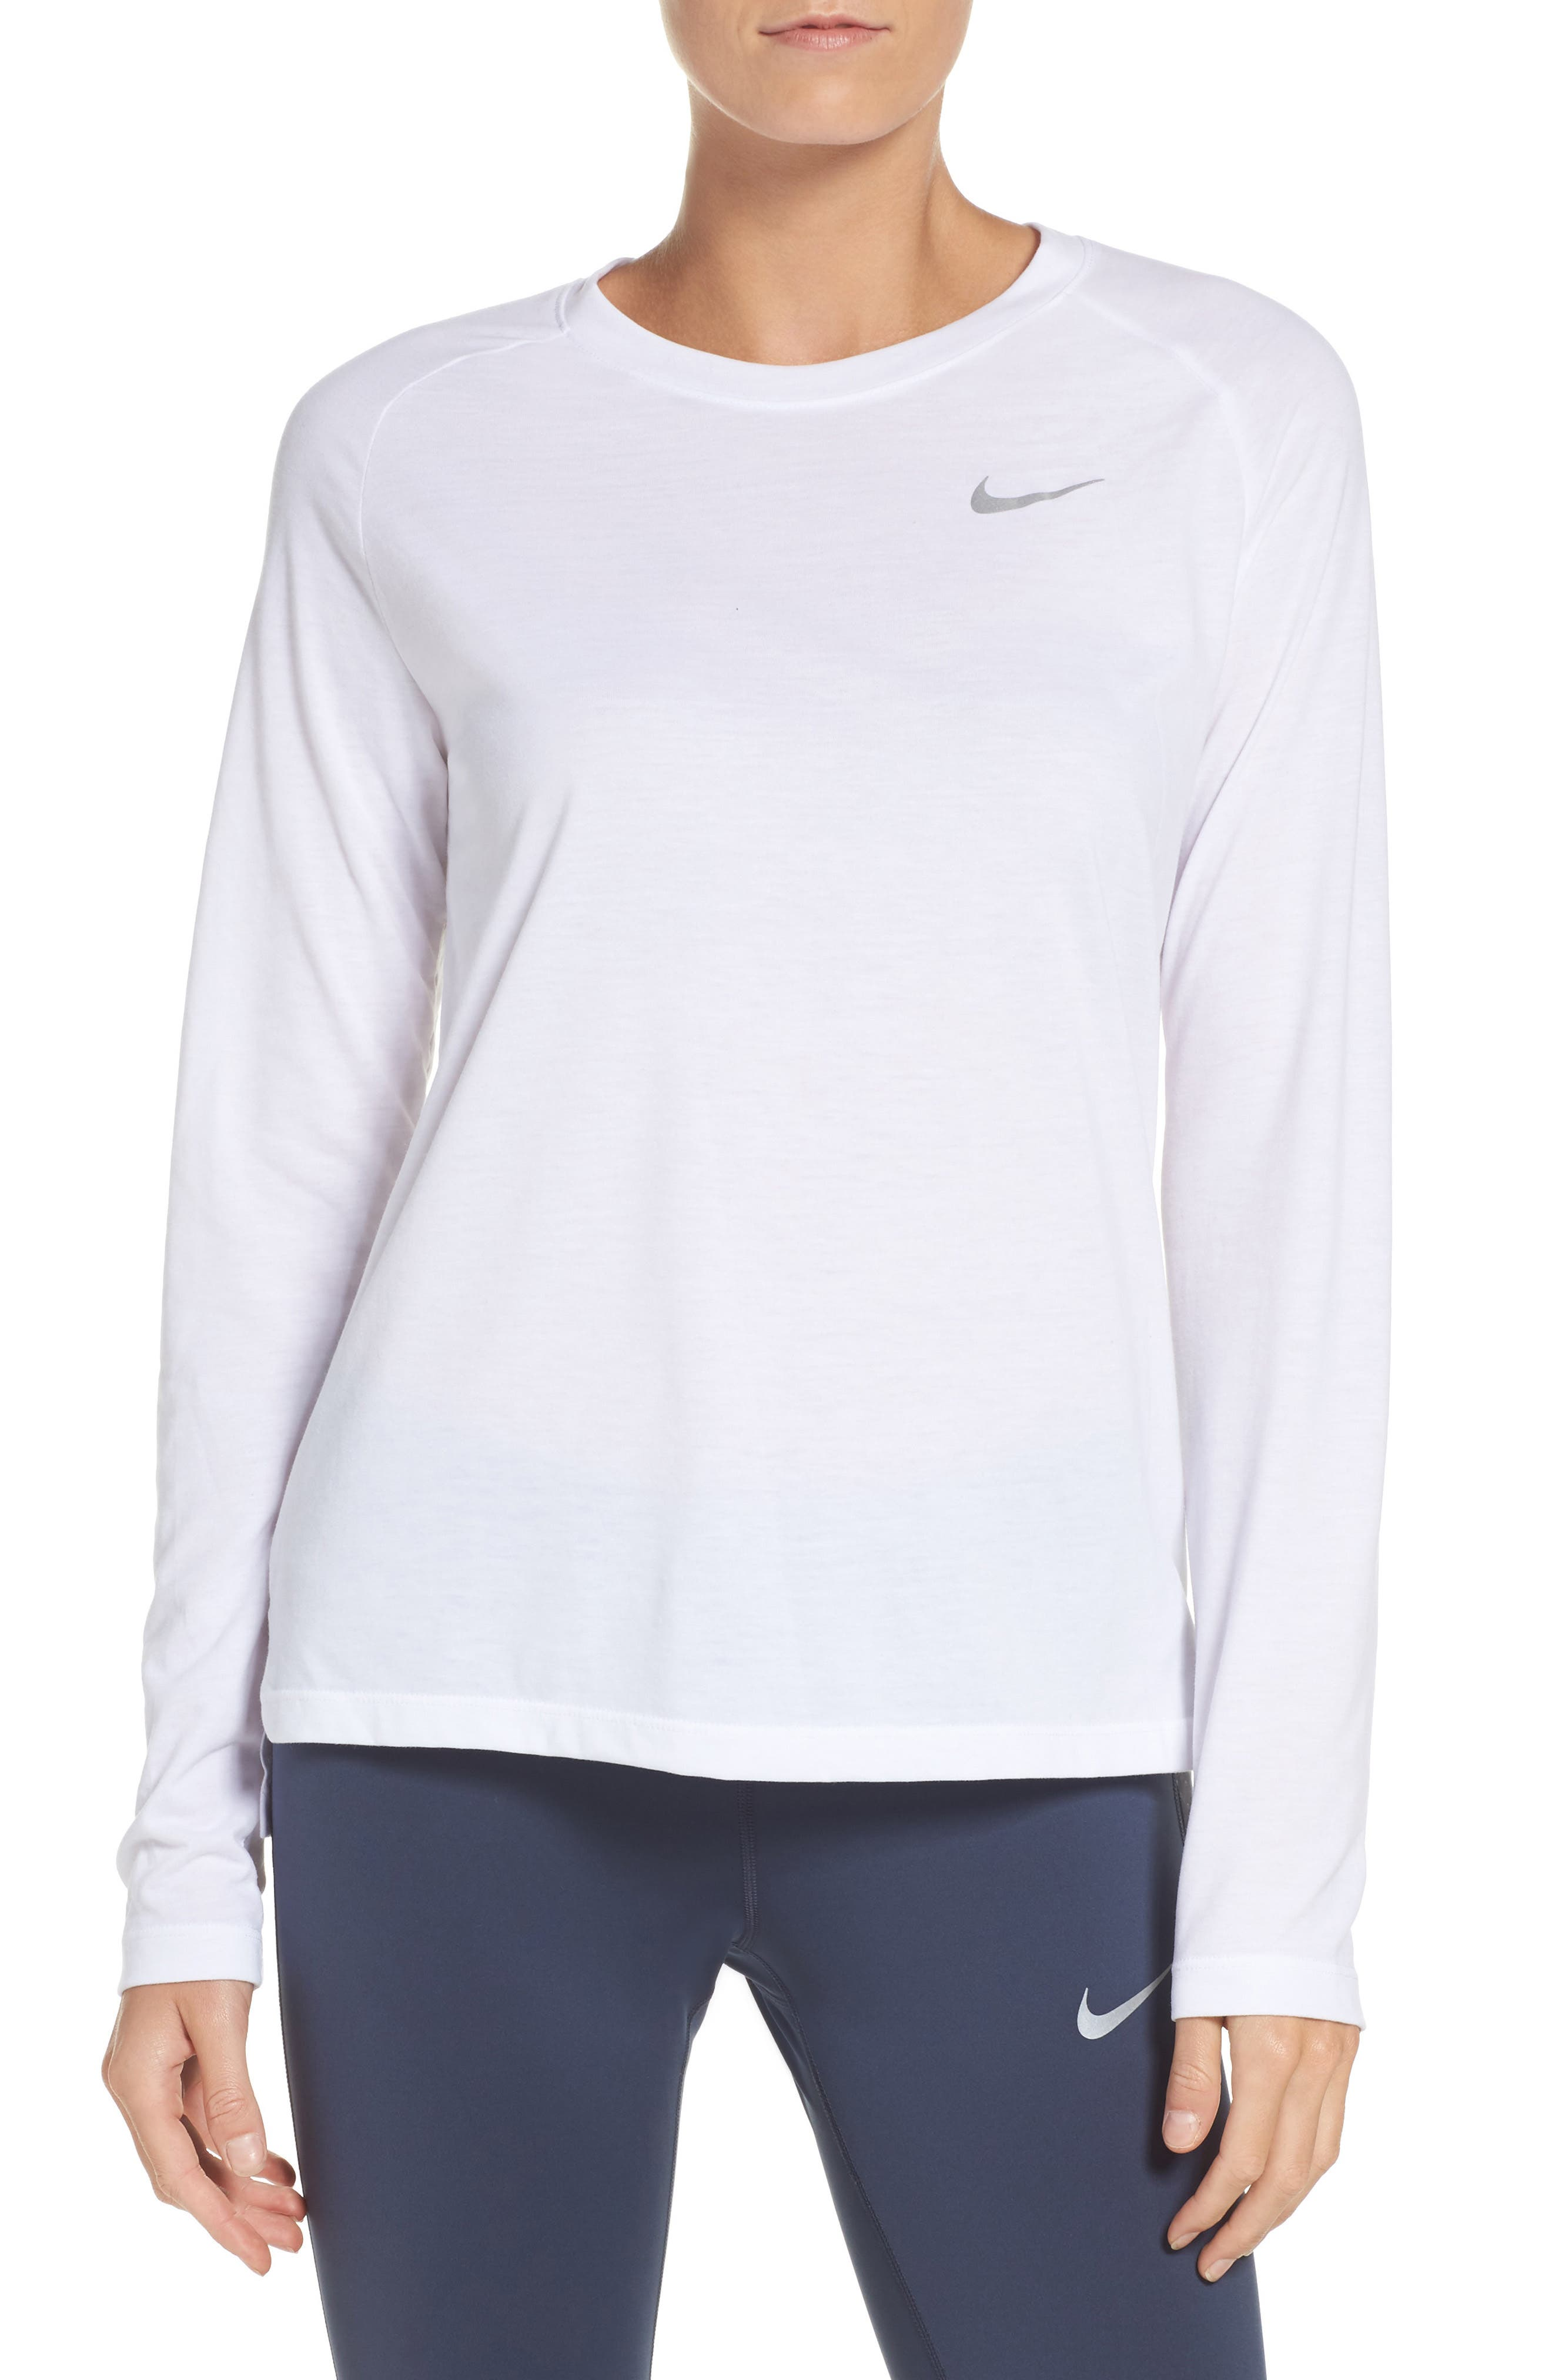 Breathe Tailwind Running Top,                         Main,                         color, 100